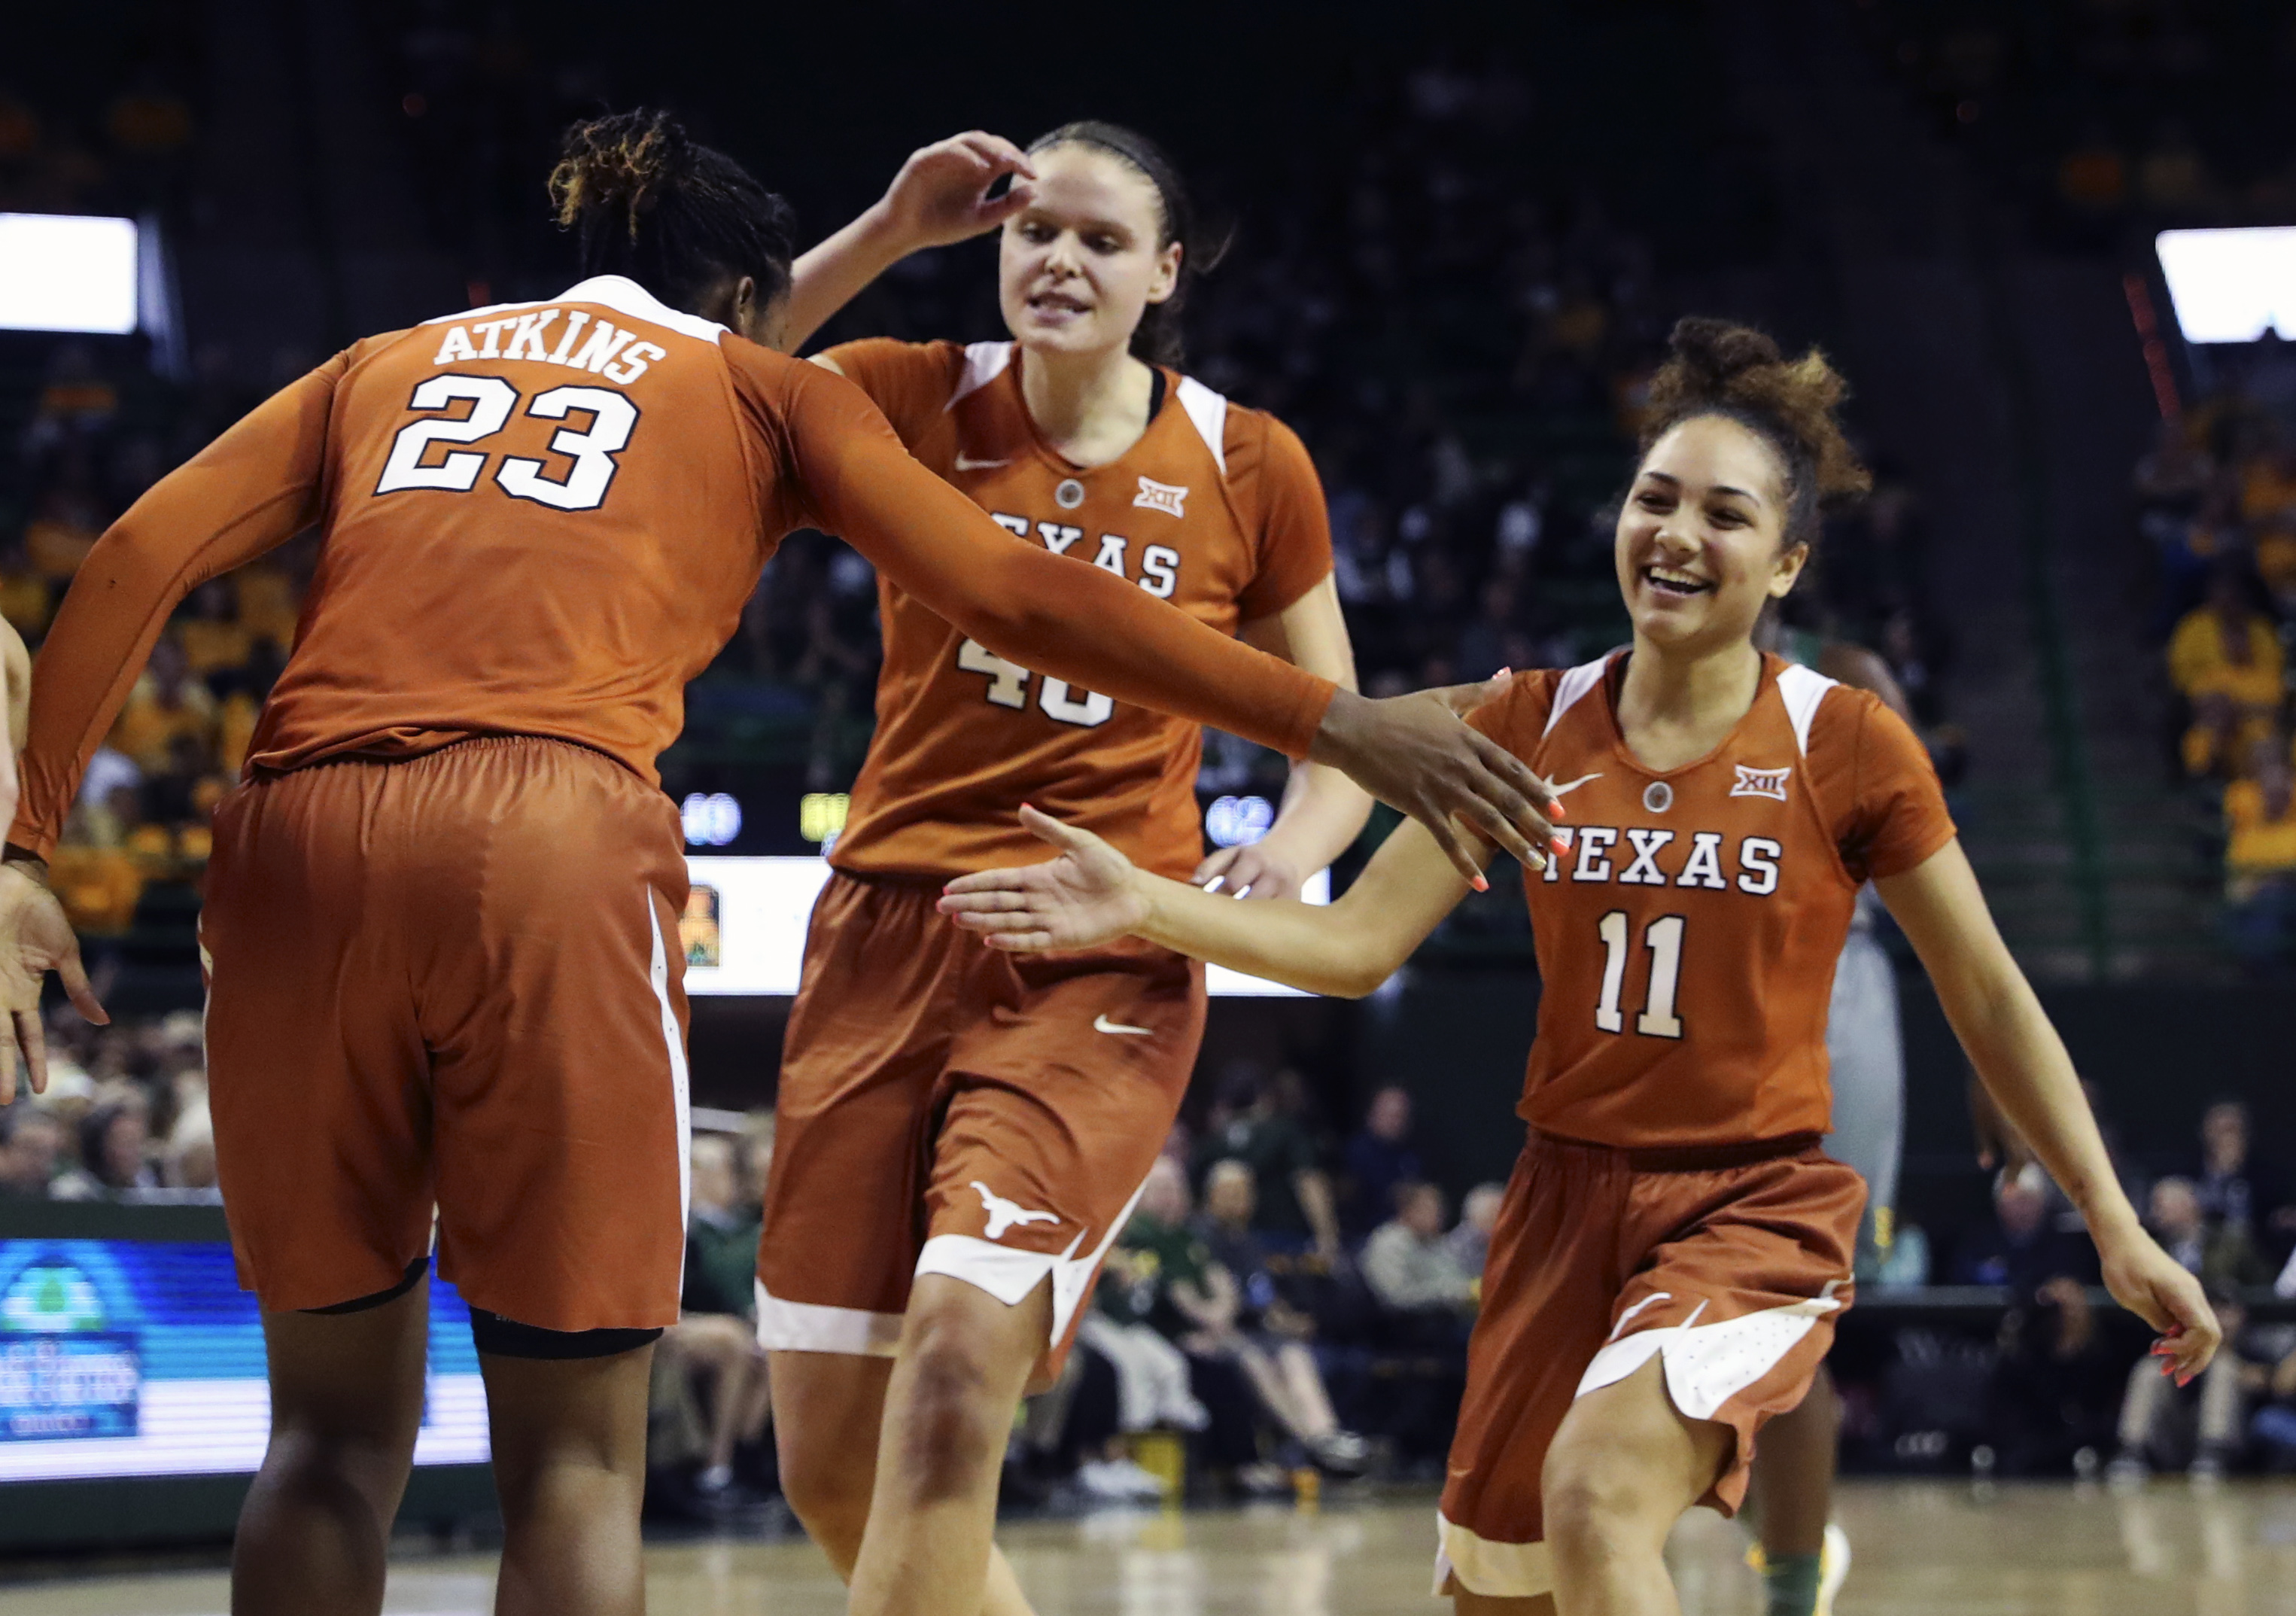 Texas Longhorns Women's Team Gets Top NCAA Honor Over UConn